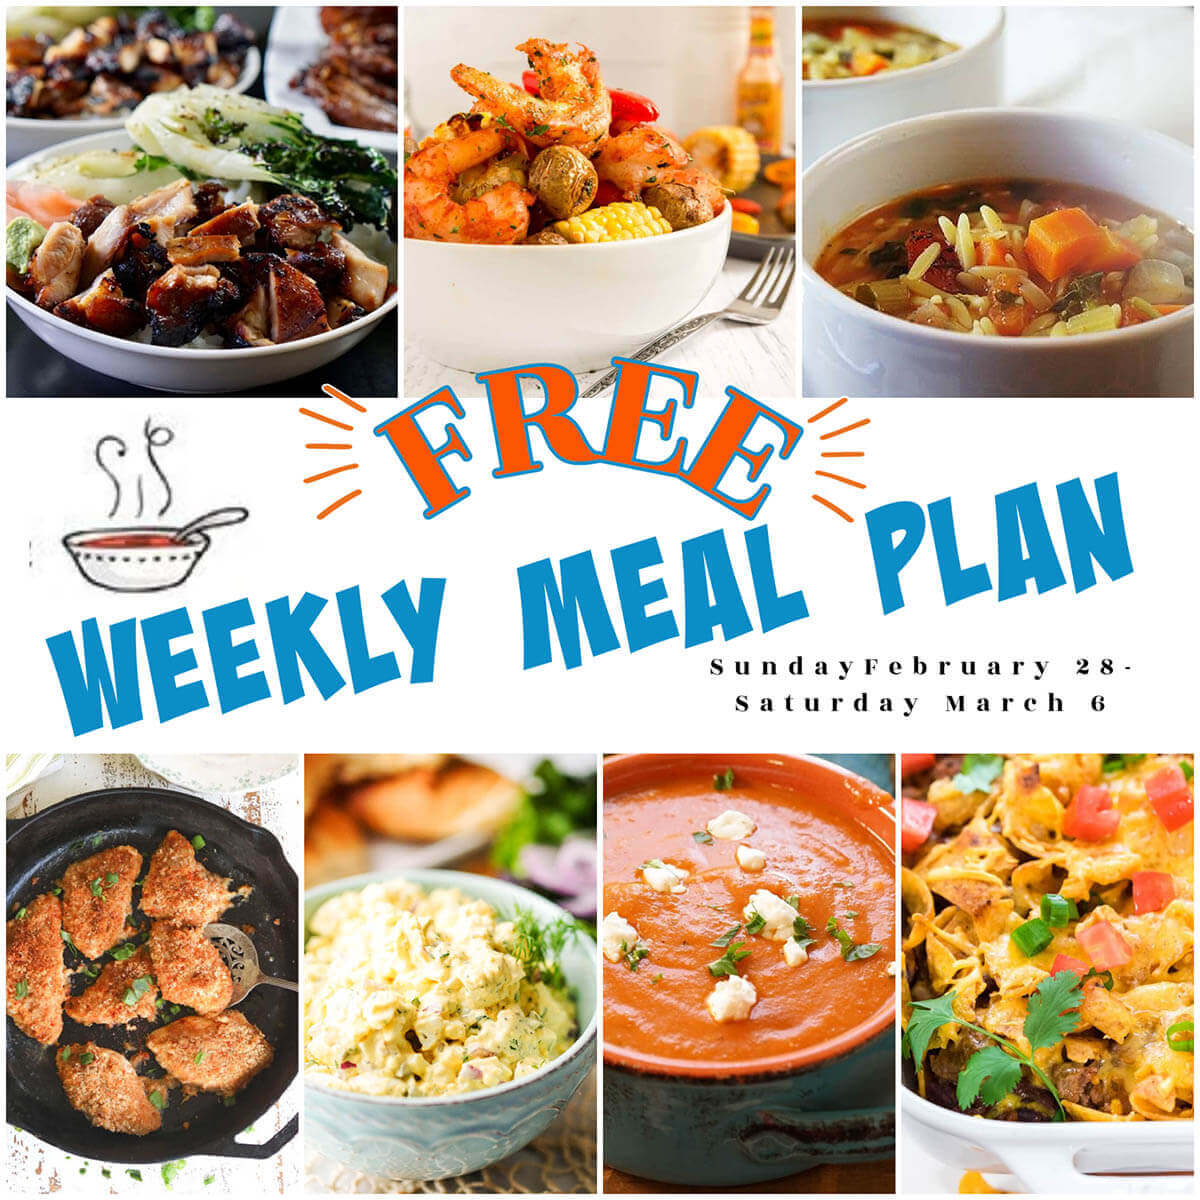 Photo collage of recipes for weekly meal plan for Feb 28-Mar 6, with print overlay.